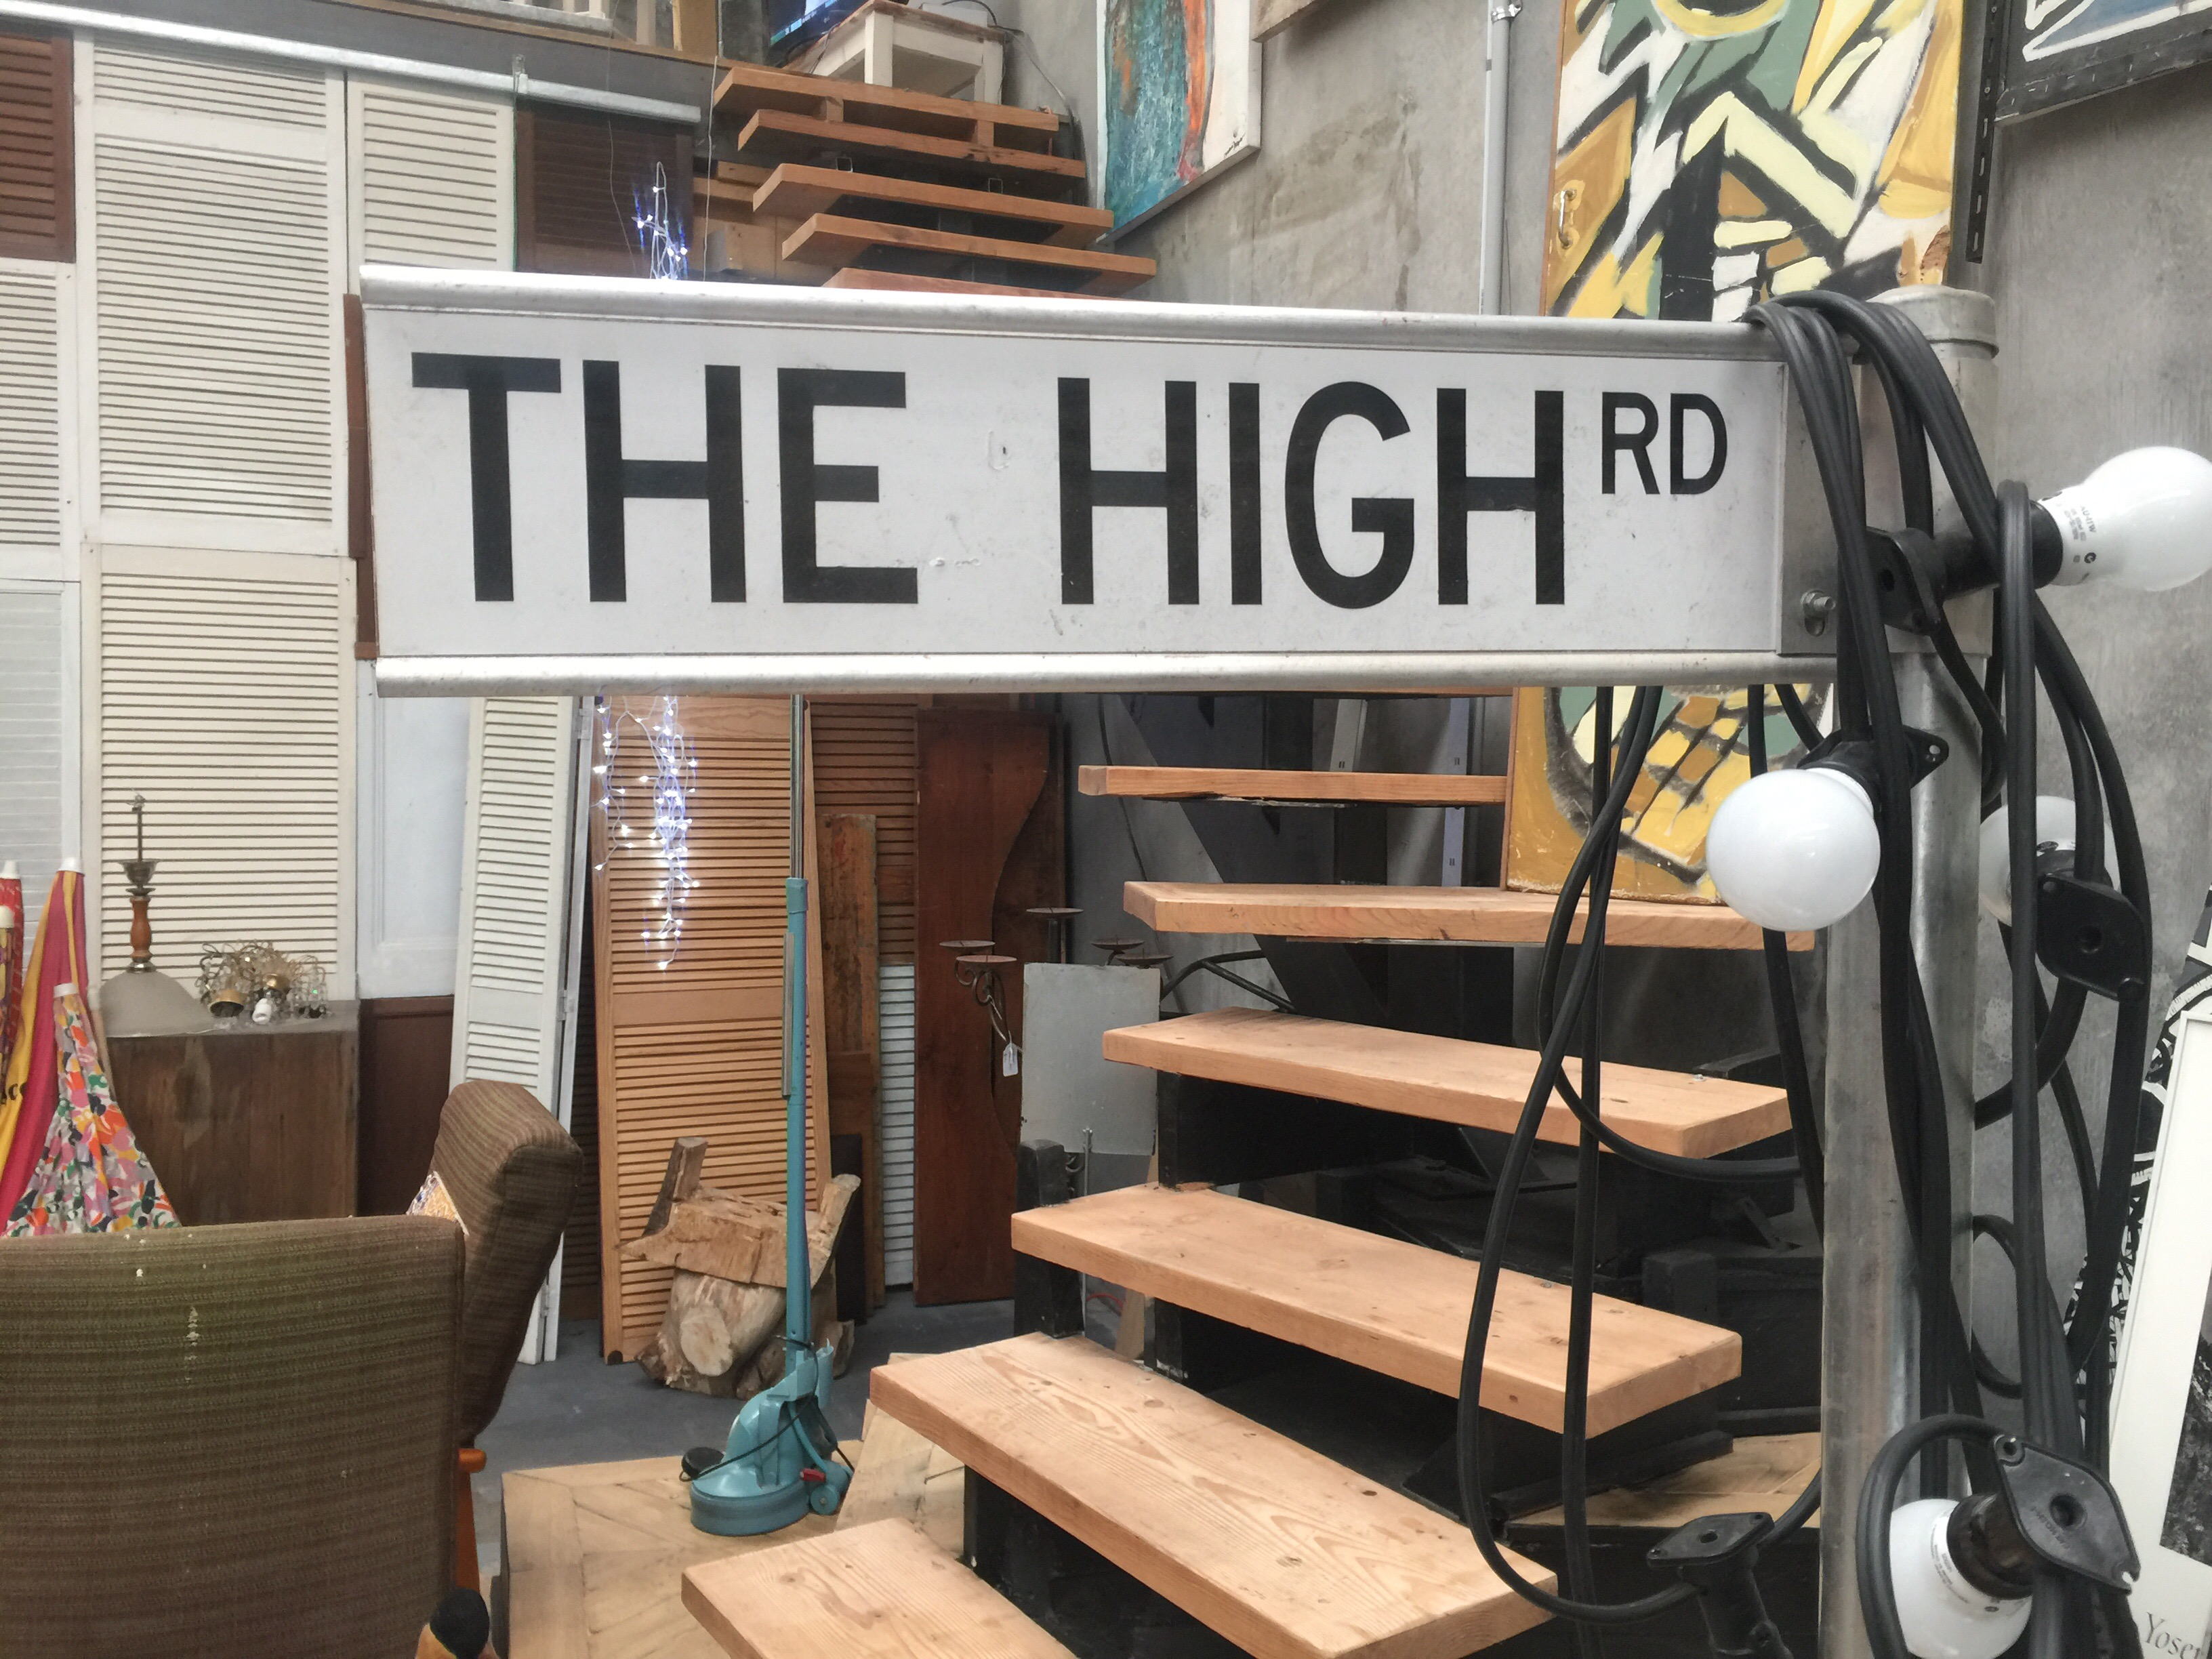 The High Rd